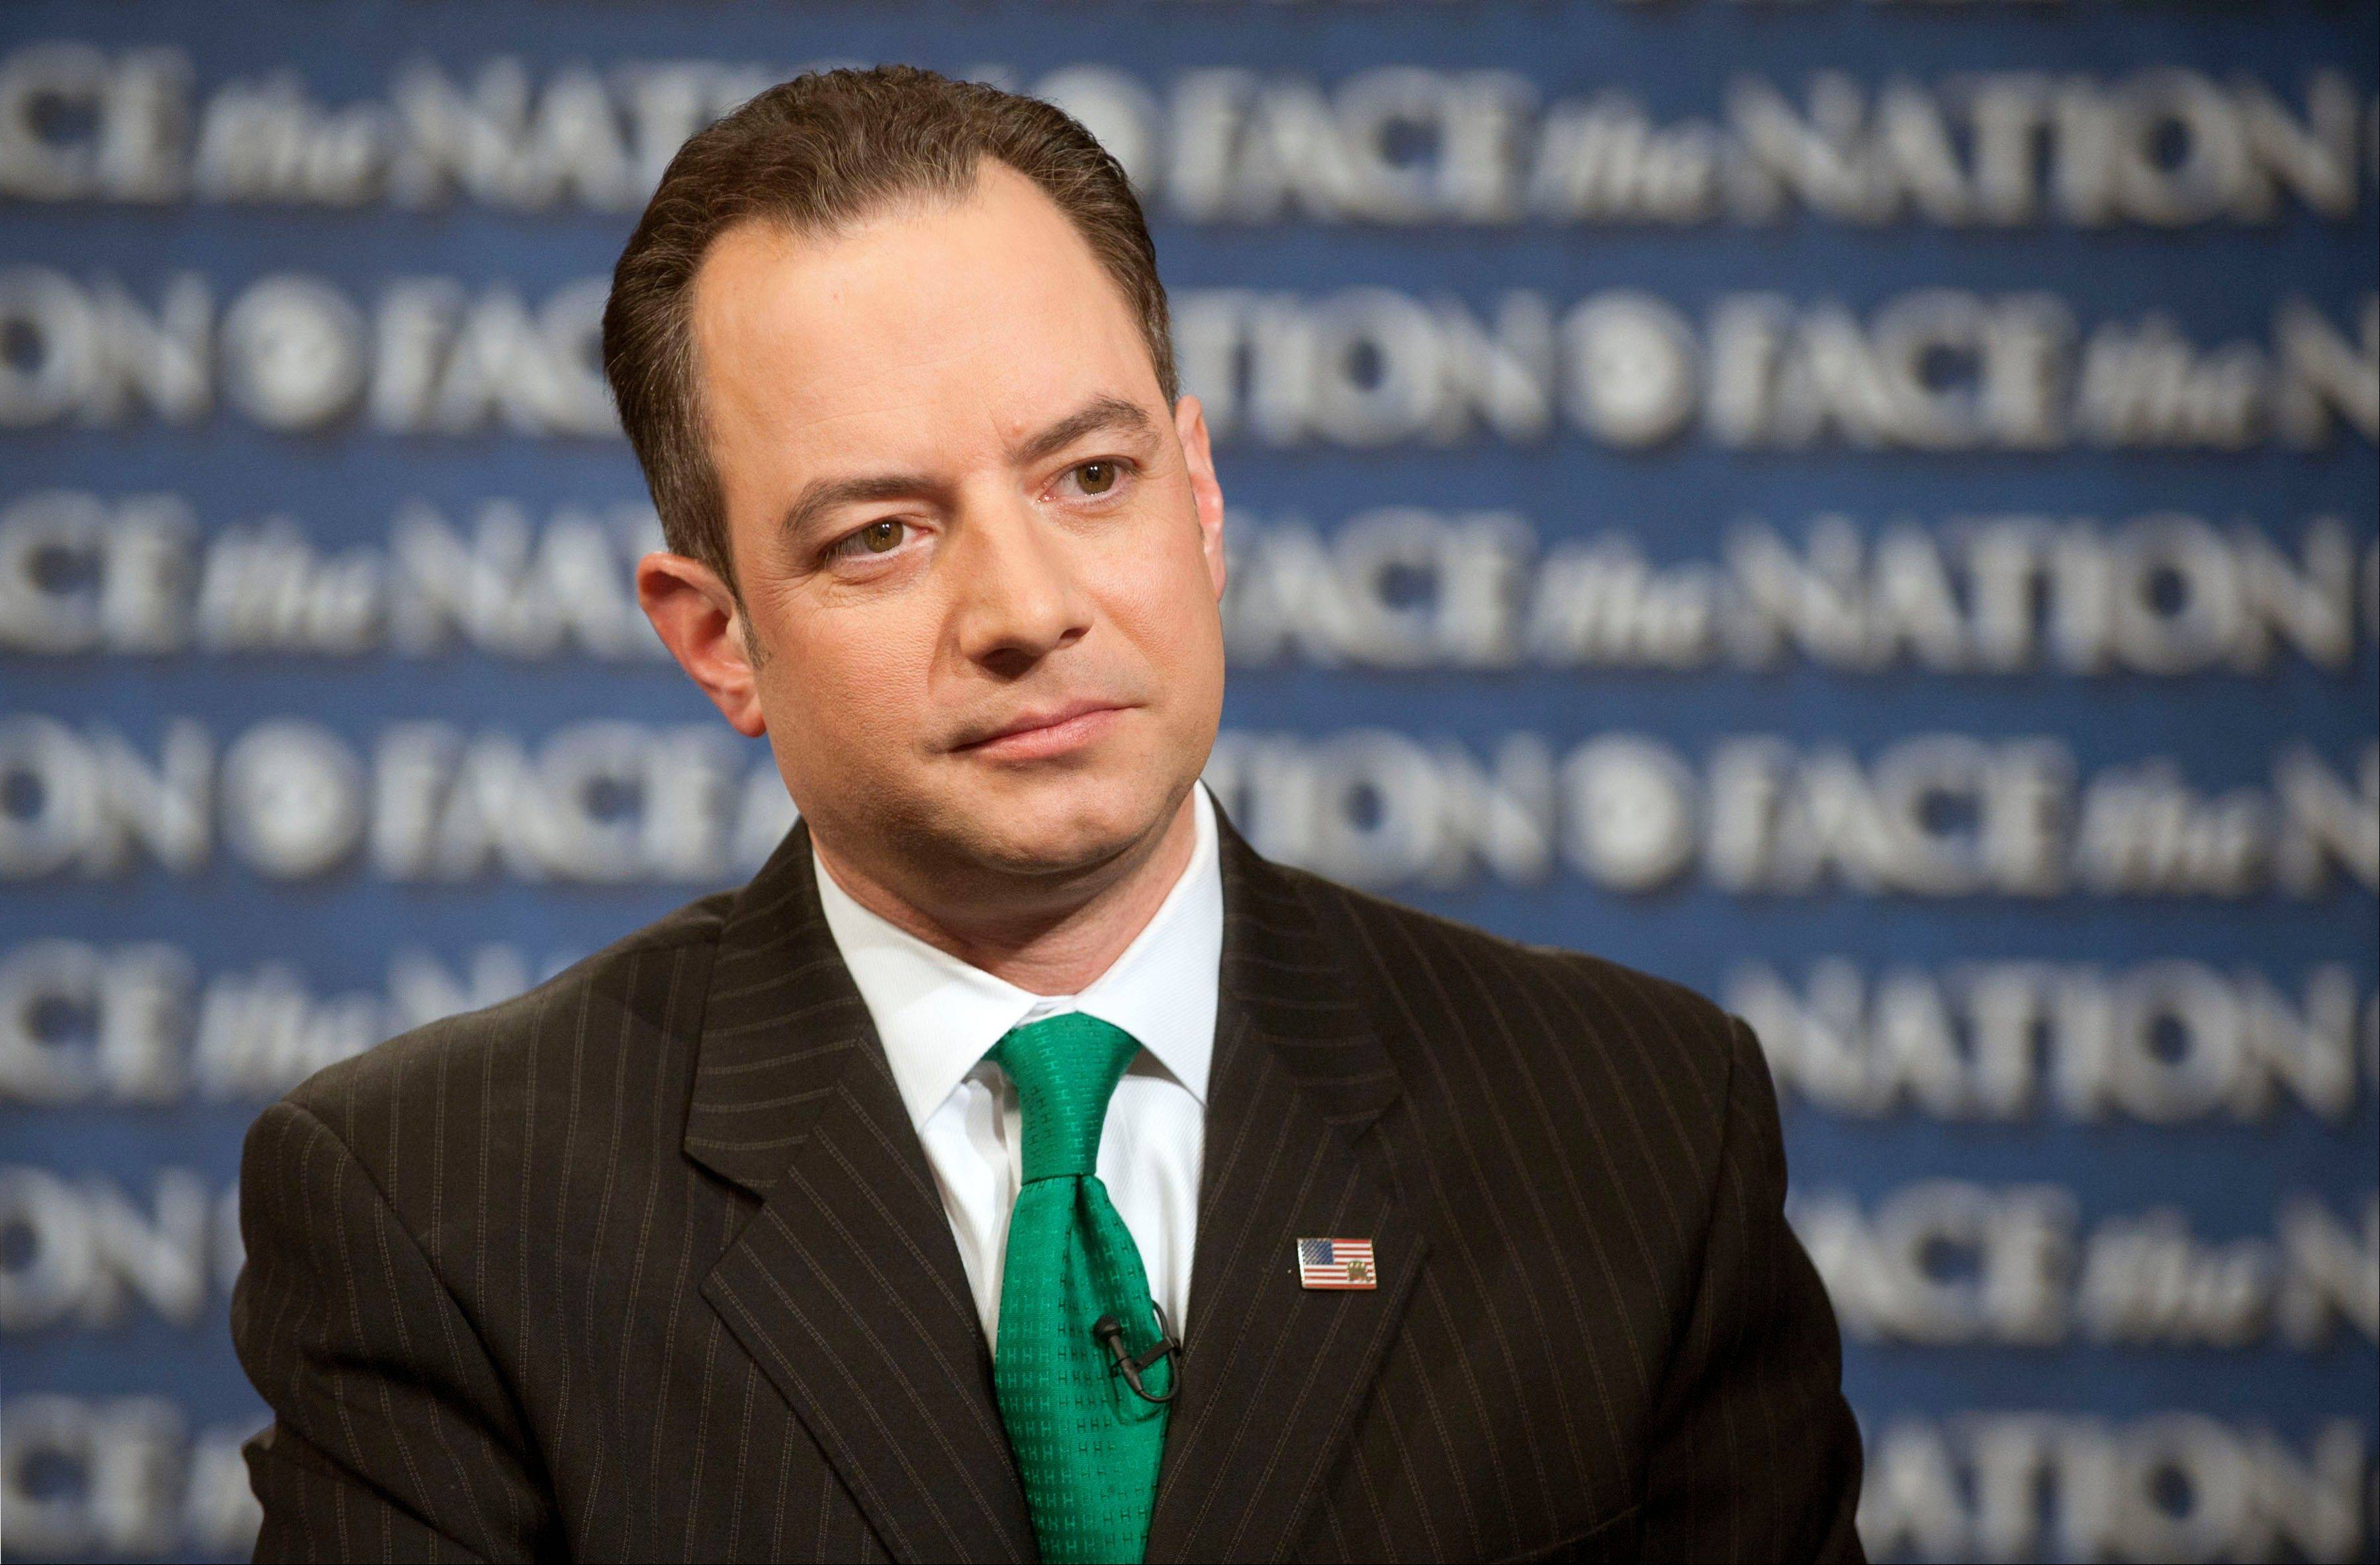 Republican National Committee Chairman Reince Priebus said Sunday the party will spend $10 million this year to send hundreds of paid staffers into communities to talk with Hispanic, black and Asian voters. He is scheduled to outline his plan for the party today.